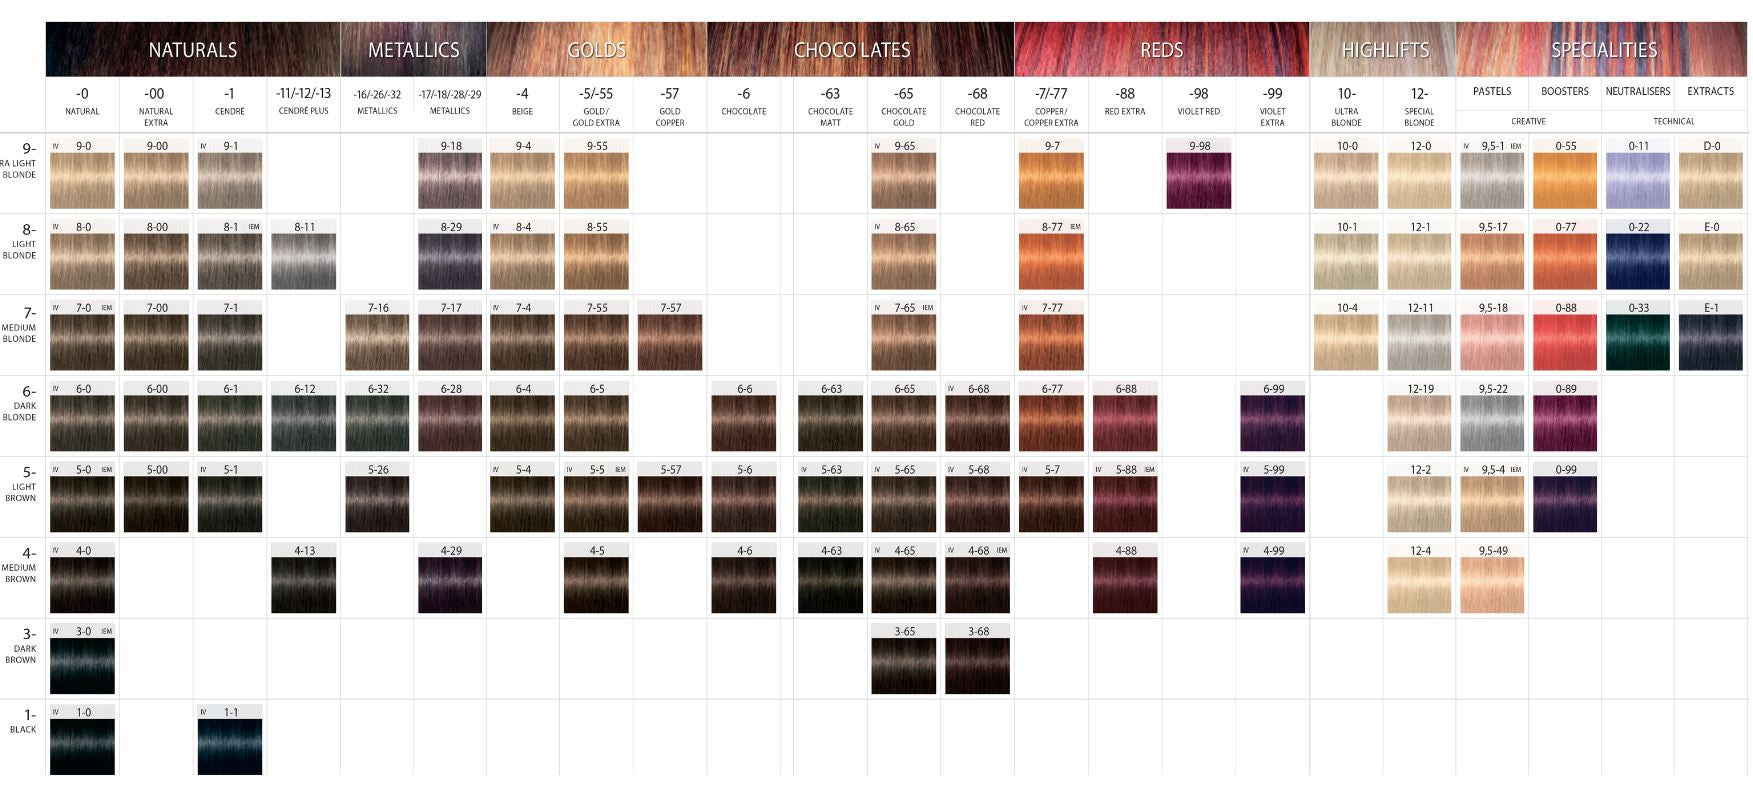 Schwarzkopf igora personality hair color chart best hair color schwarzkopf royal hair color chart igora images nvjuhfo Gallery